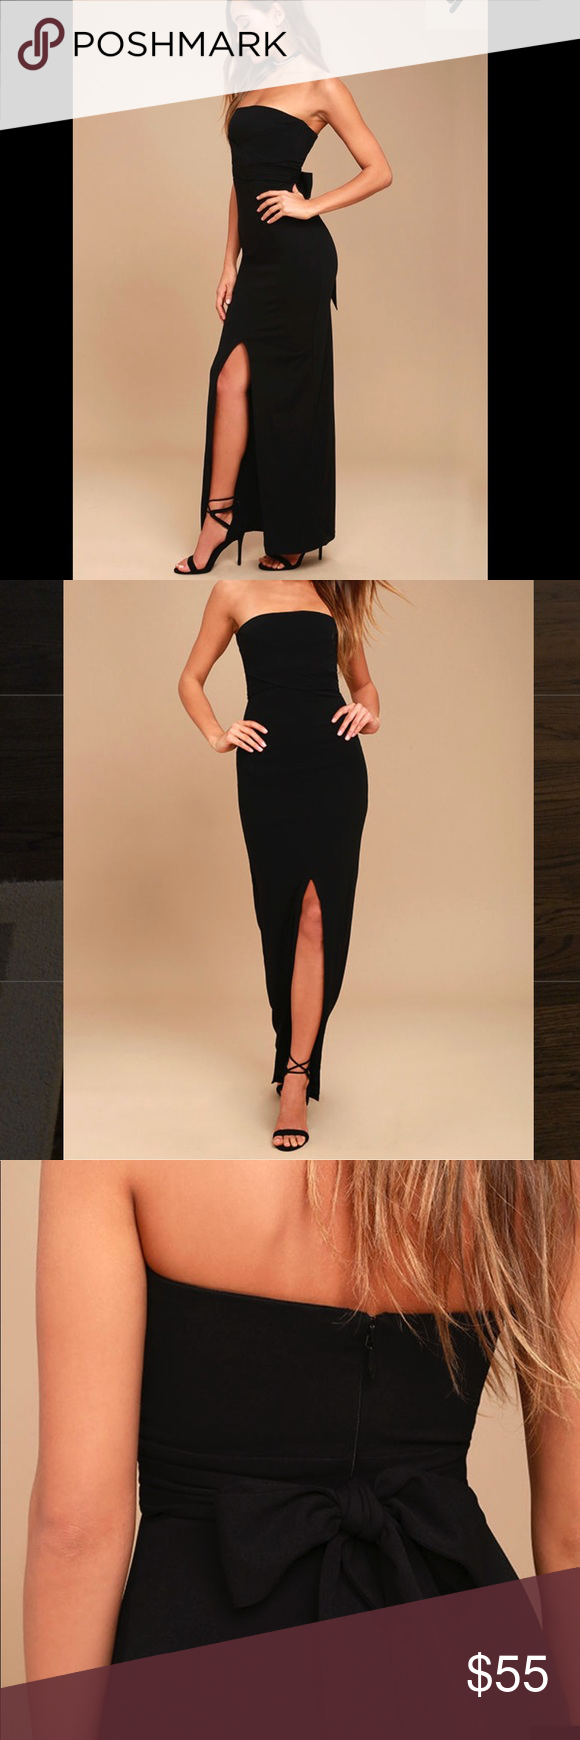 """Black Lulu s strapless maxi dress Lulu s """"Own the Night"""" dress is gorgeous  for any occasion when you need to get glam. Size small. Has a slit in the  front 1beda47a9"""